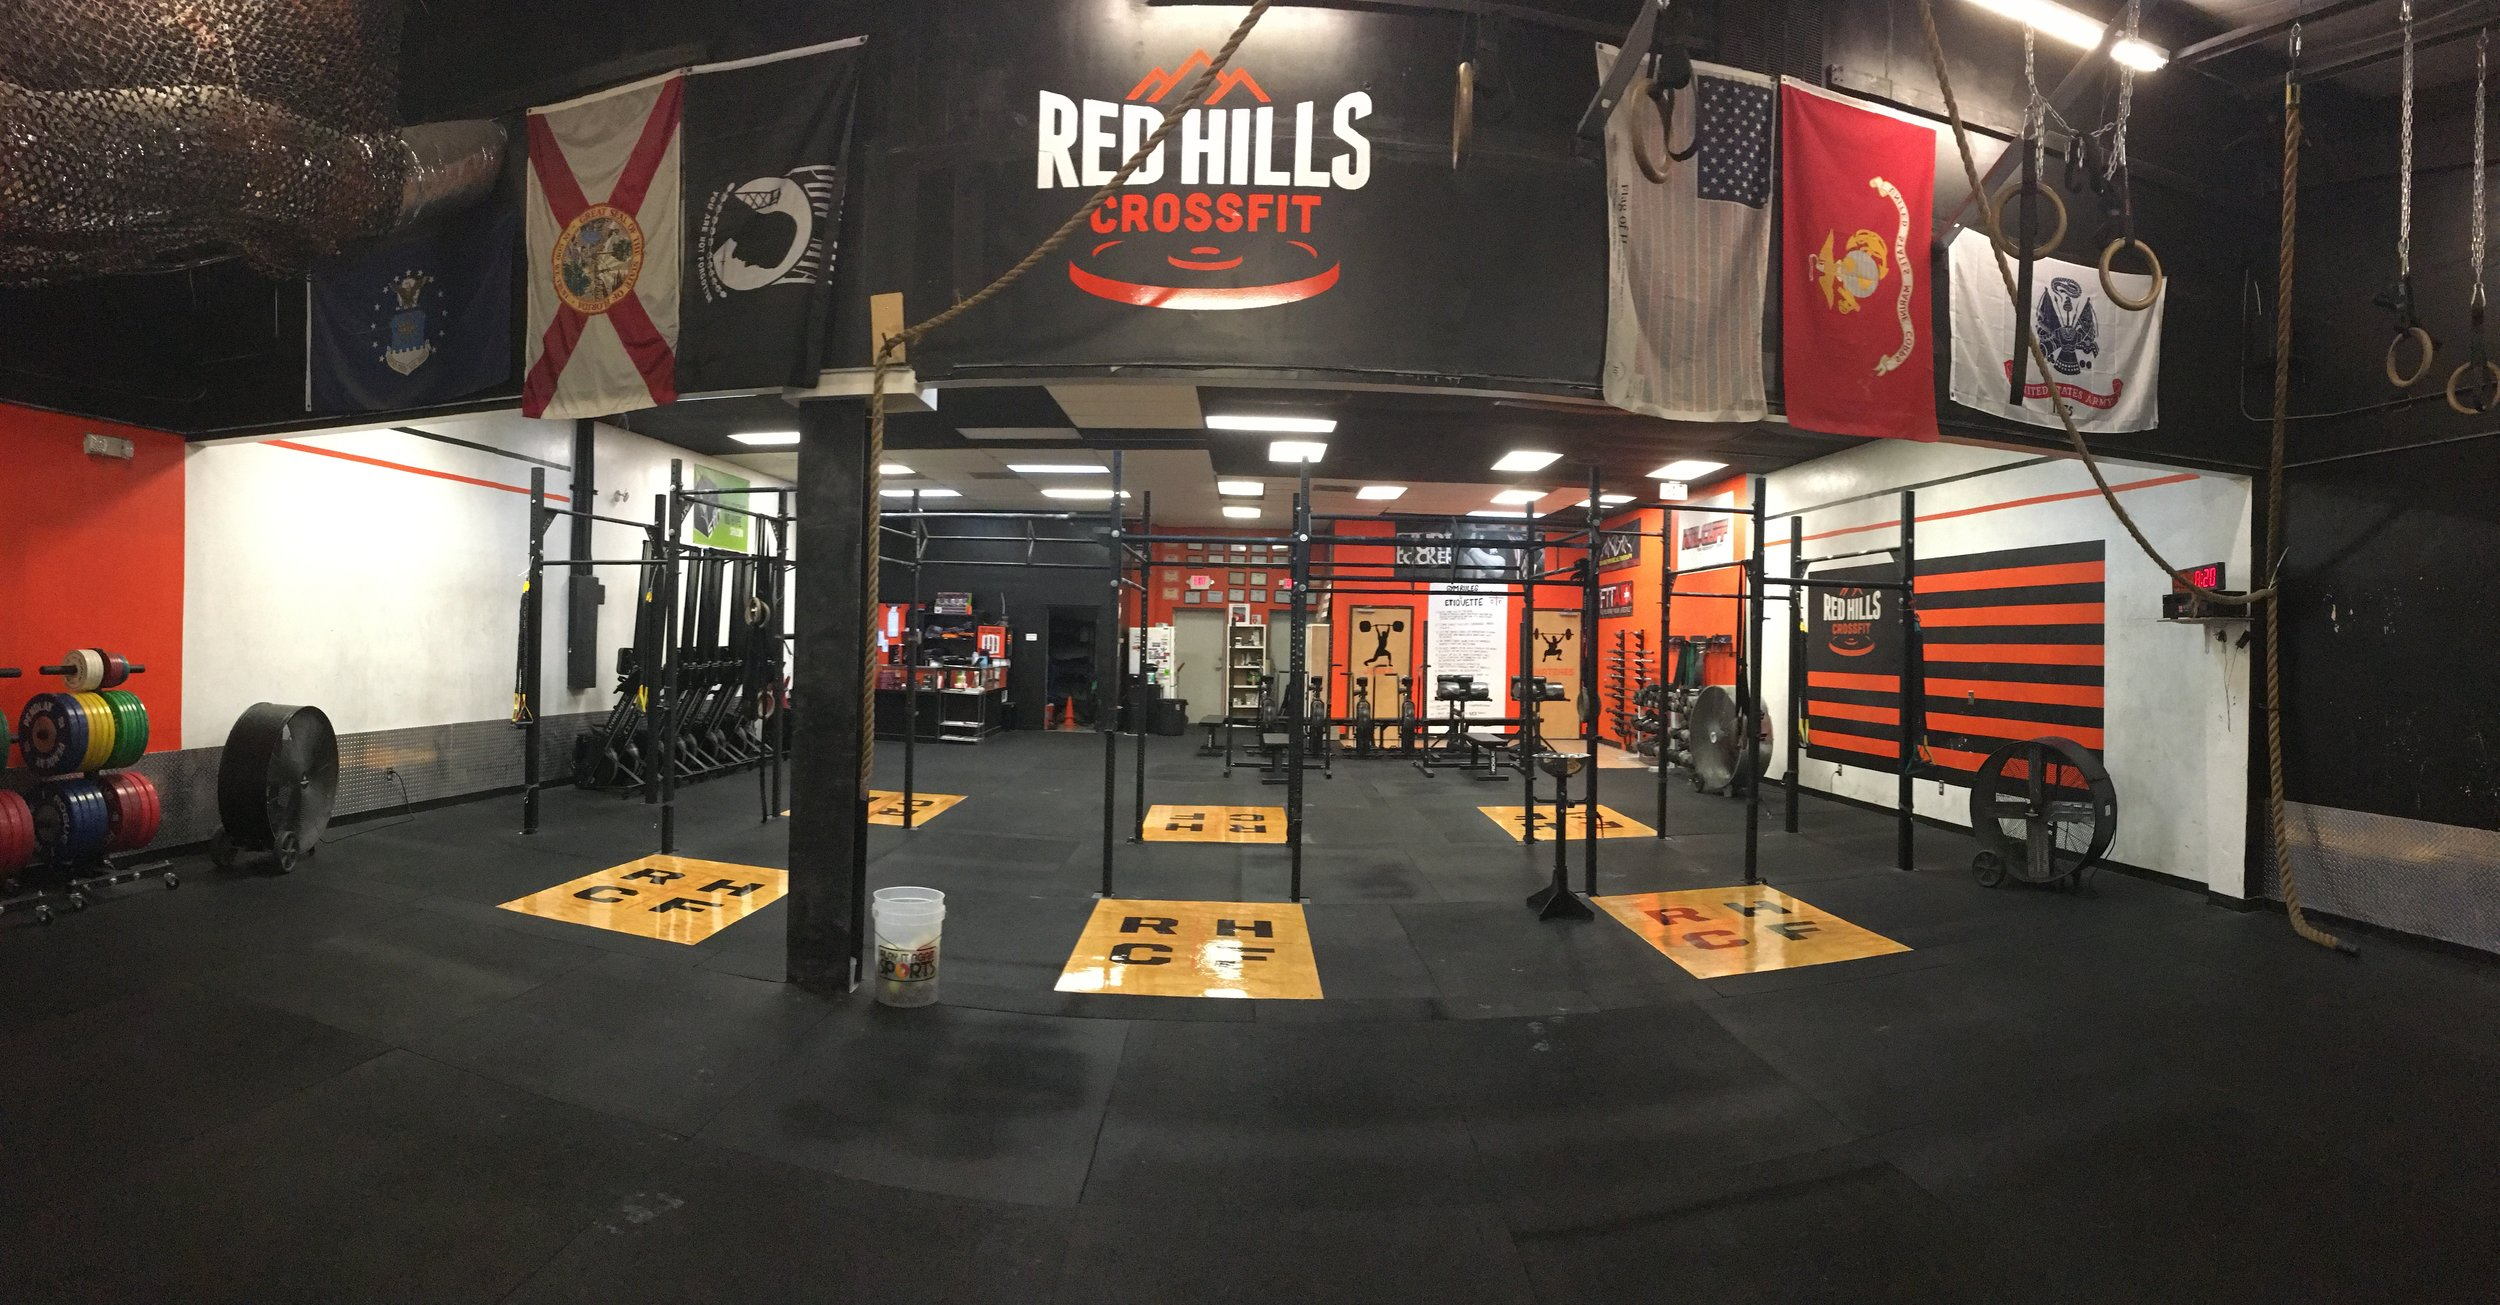 Red Hills Crossfit Tallahassee